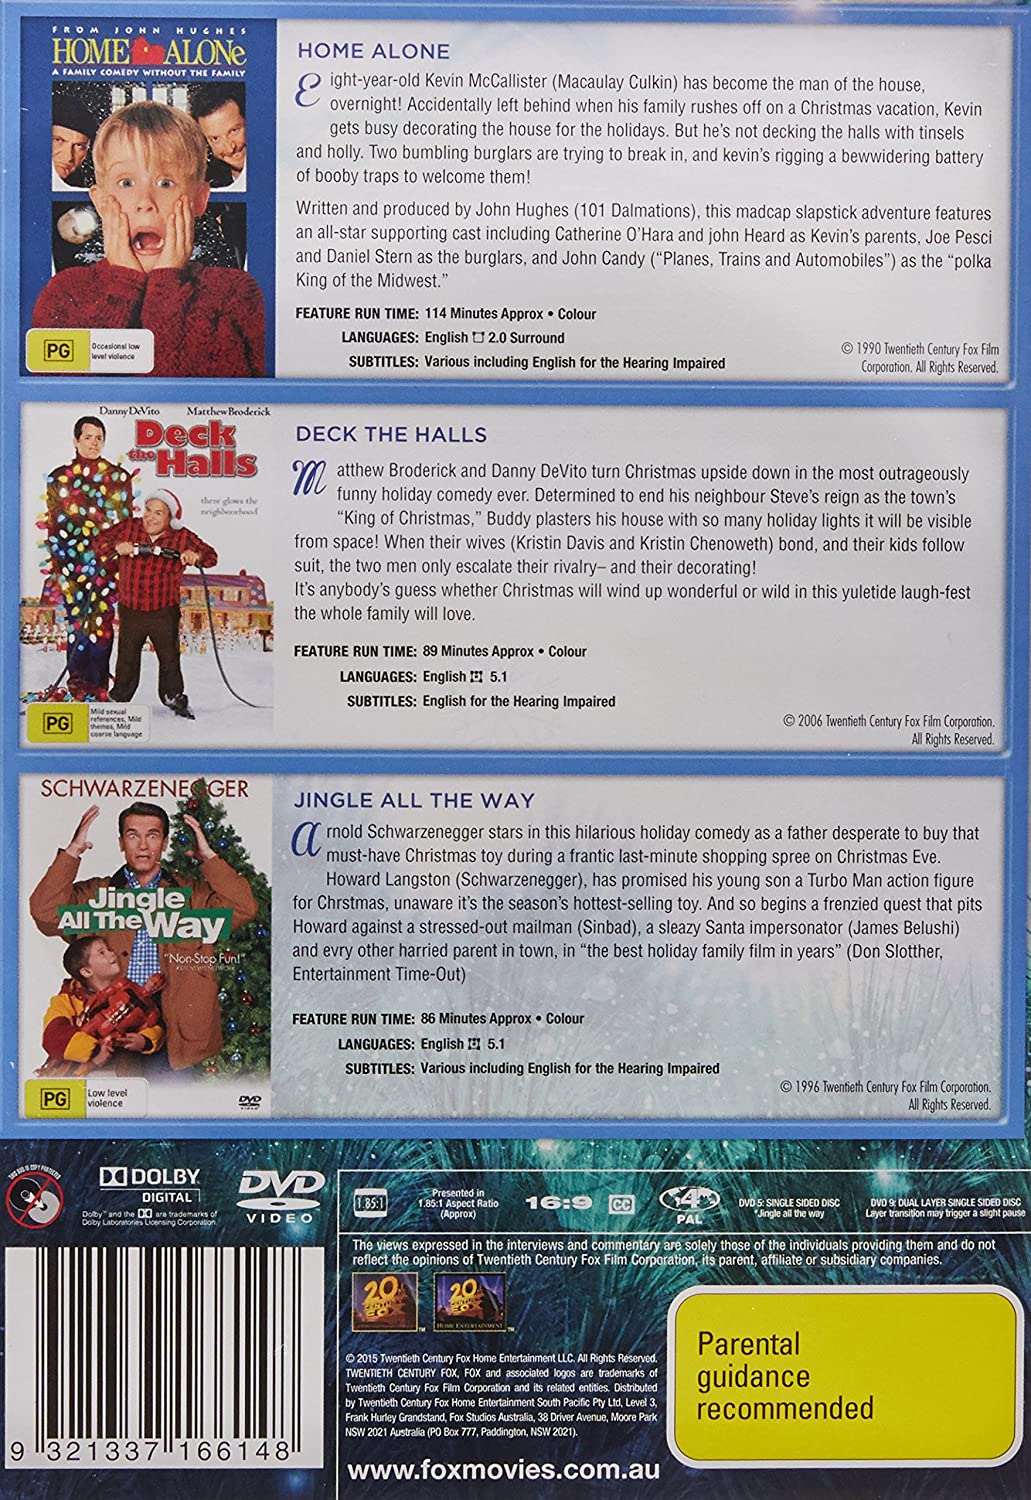 Amazon.com: 3 Movie Christmas Collection: Home Alone, Deck The Halls, Jingle All The Way: Movies & TV